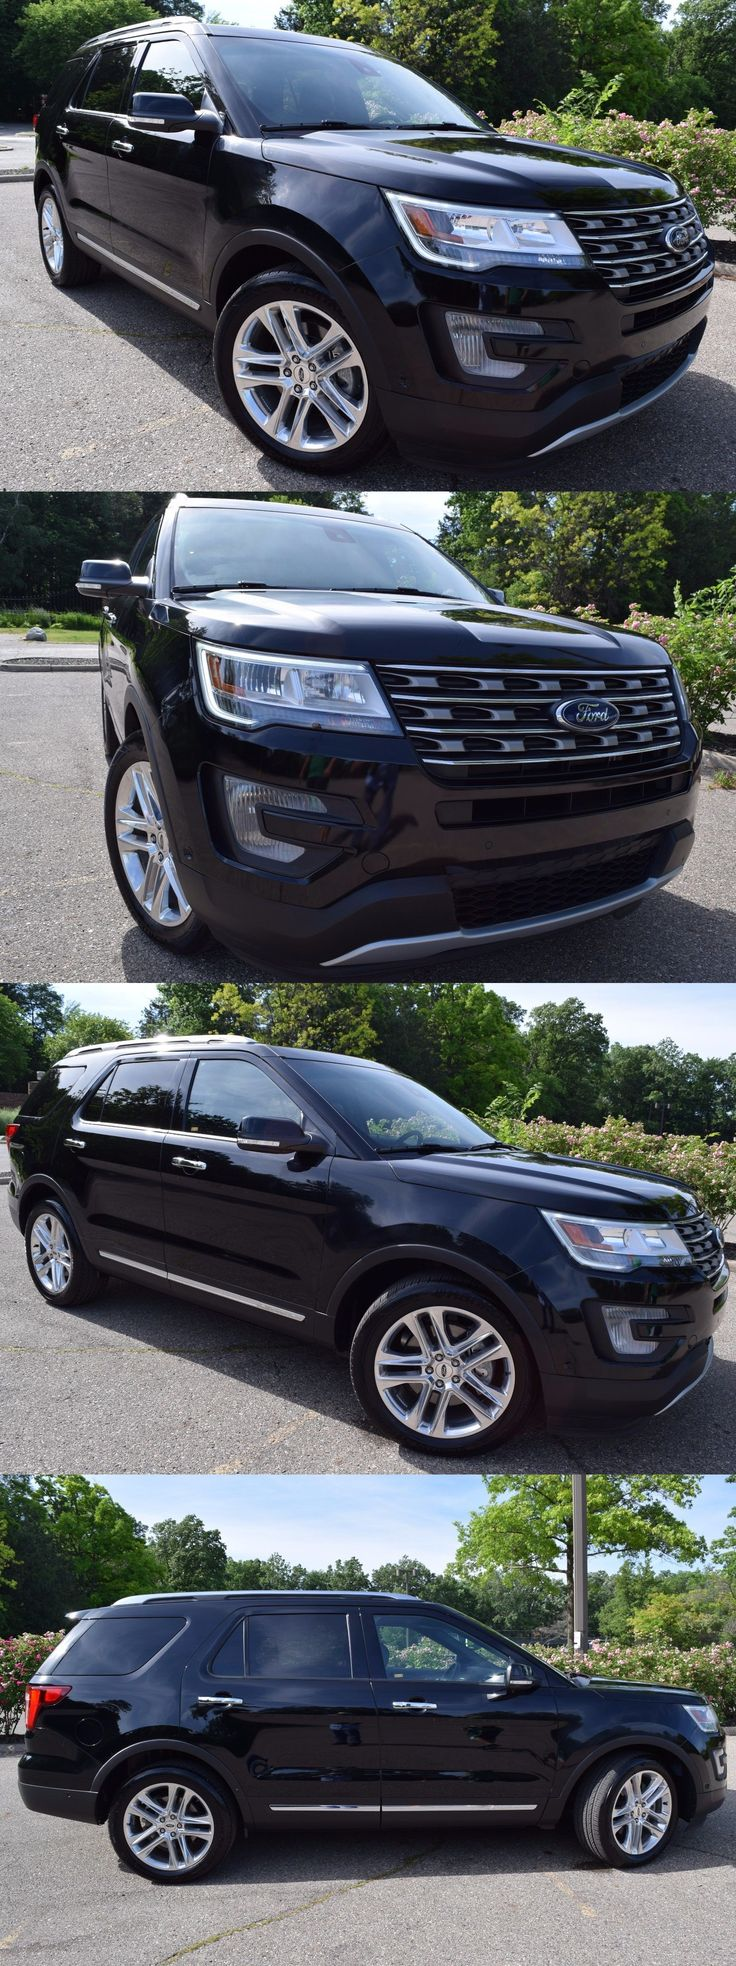 Suvs 2016 ford explorer limited edition heavily optioned suv 2016 ford explorer